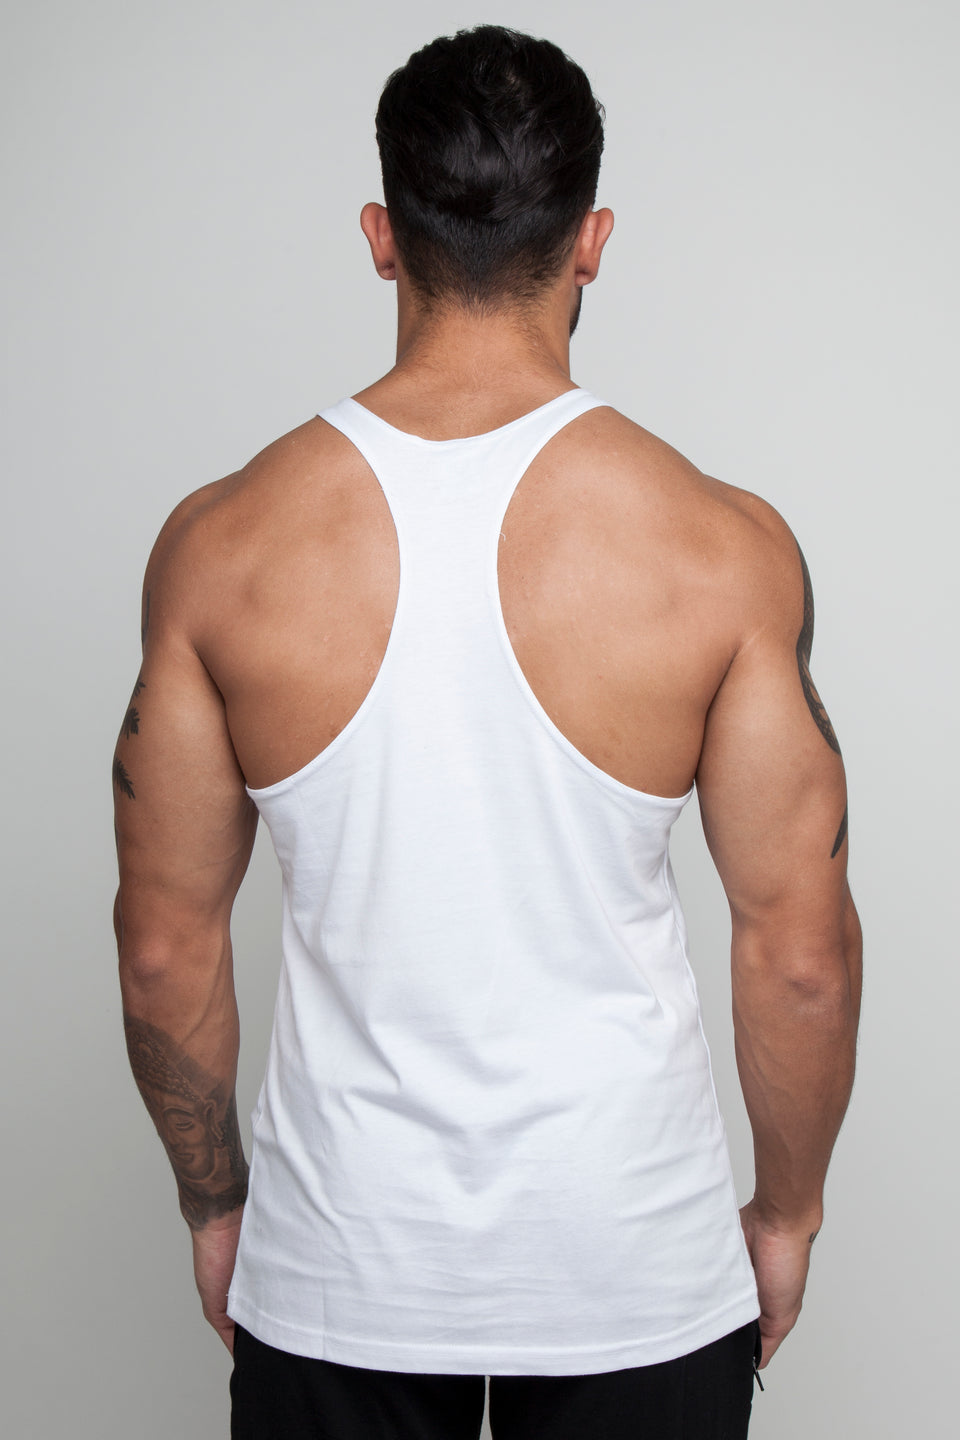 Vypex® Small Emblem Men's Gym Stringer Vest In Astral White